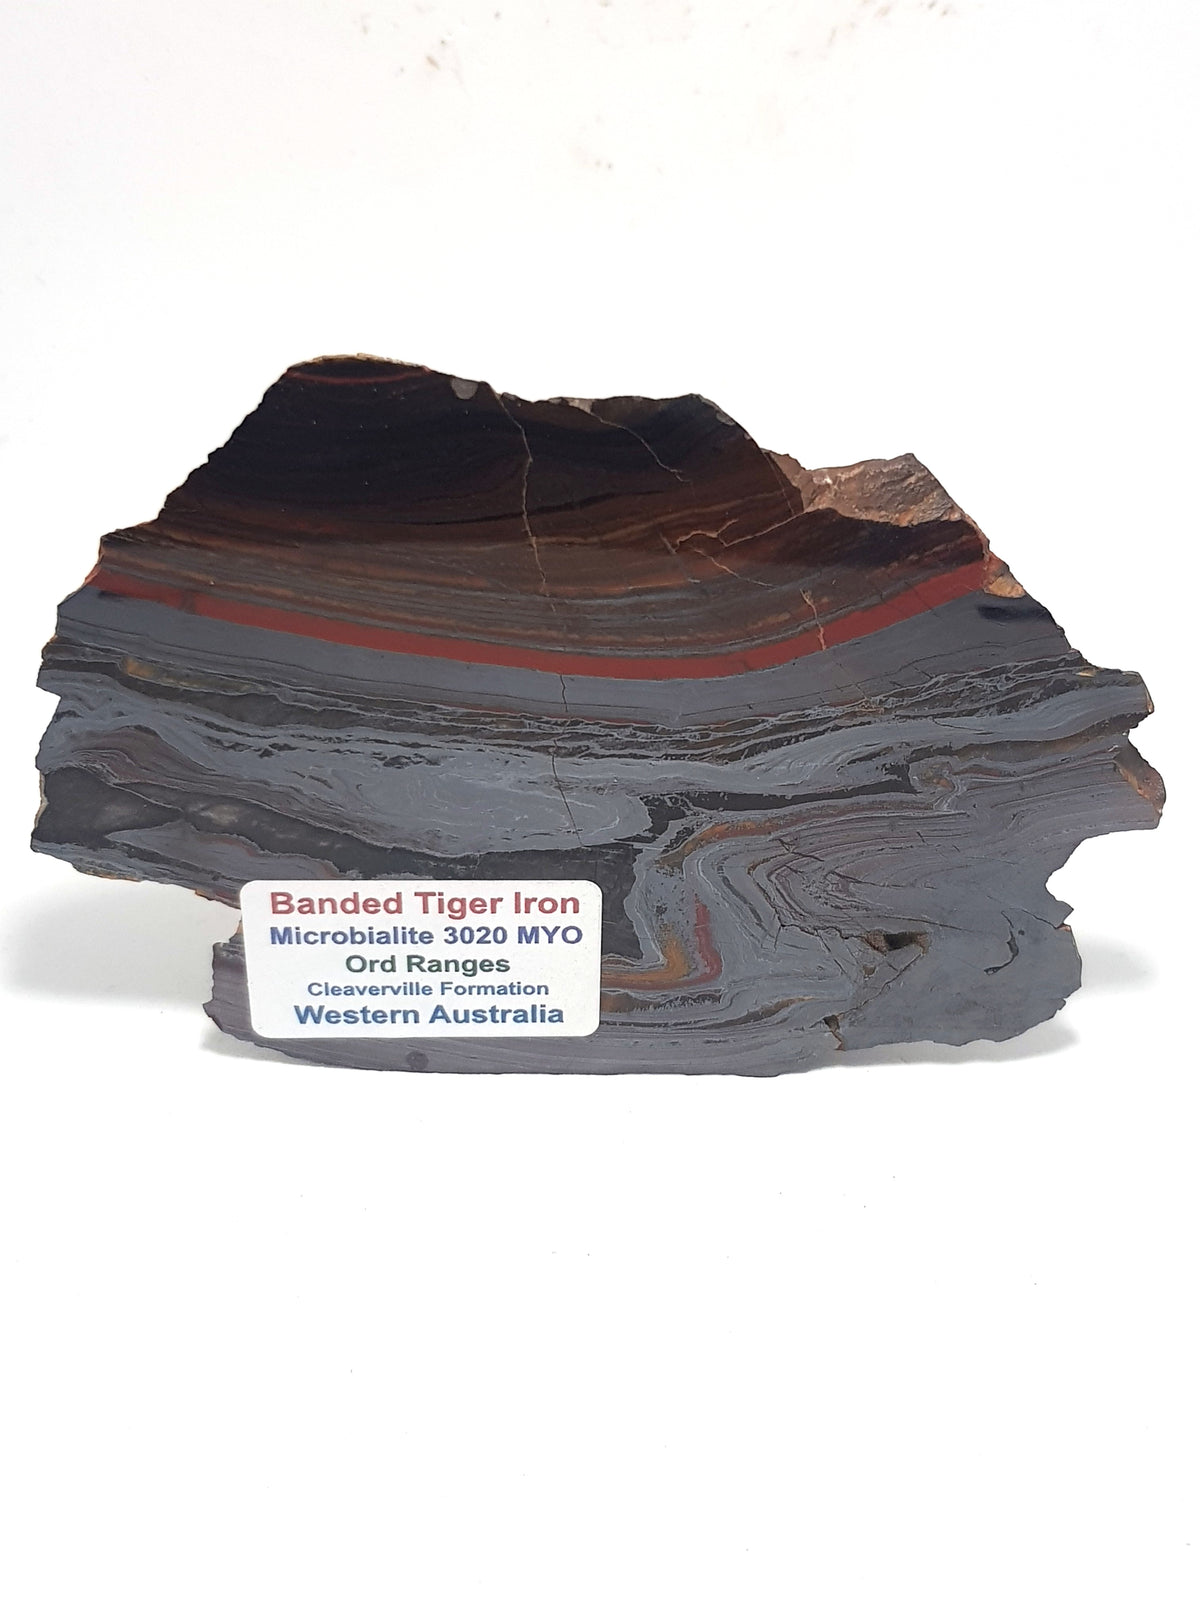 Polished banded iron slice. This is predominately silver in colour. It consists of thin silvery bands of hematite interspersed with a thick continuos band of red jasper and thinner bands of brown chert. The bands run parallel at the top of the sample. But the bottom part of the slice shows extensive folding and replacement with tiger eye.